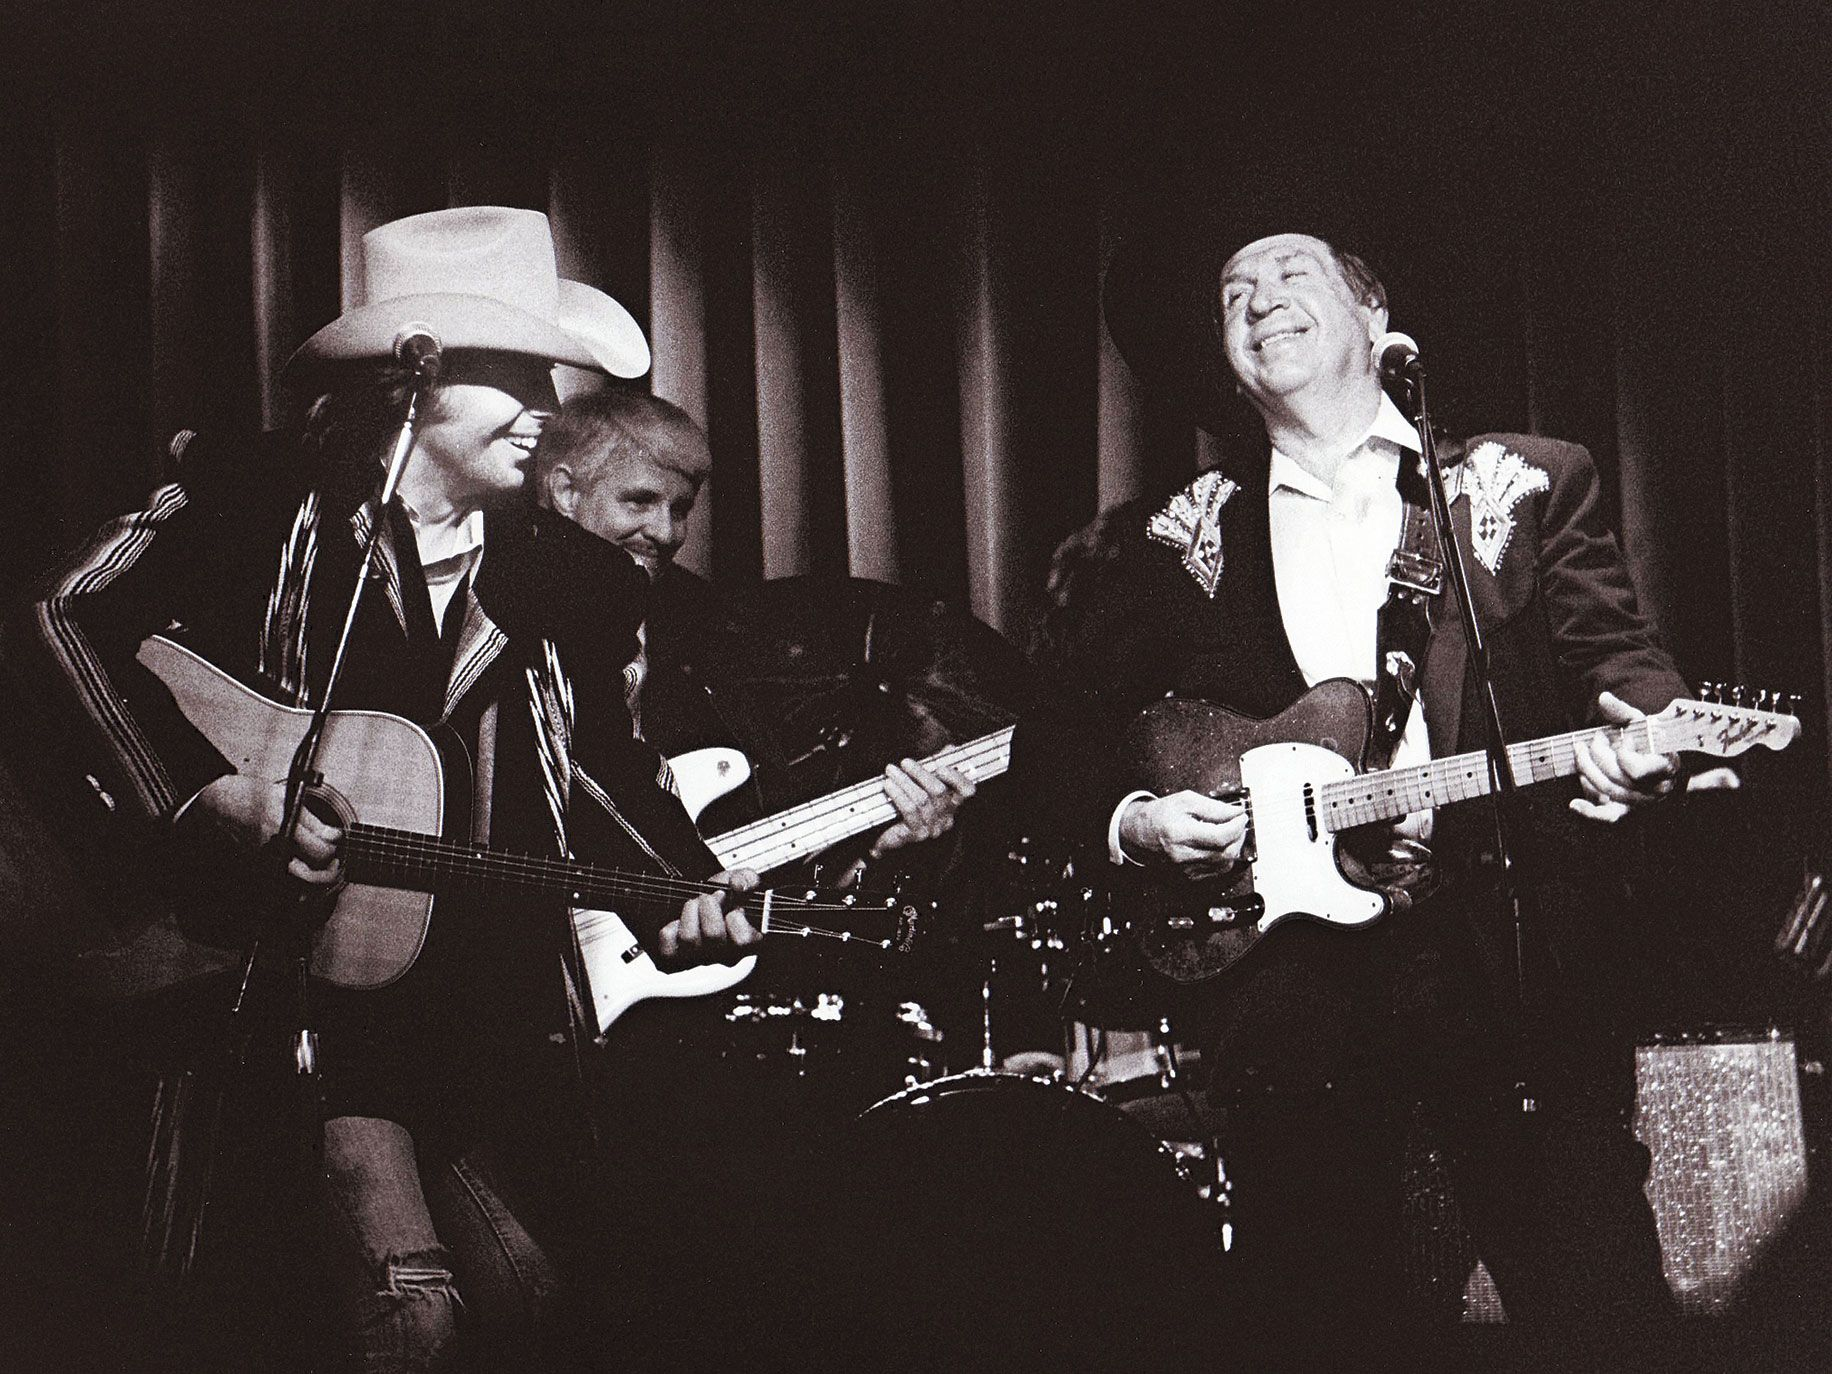 Native son Buck Owens helped define the raw and rough-hewn Bakersfield sound that cemented California's important role in the evolution of country music.